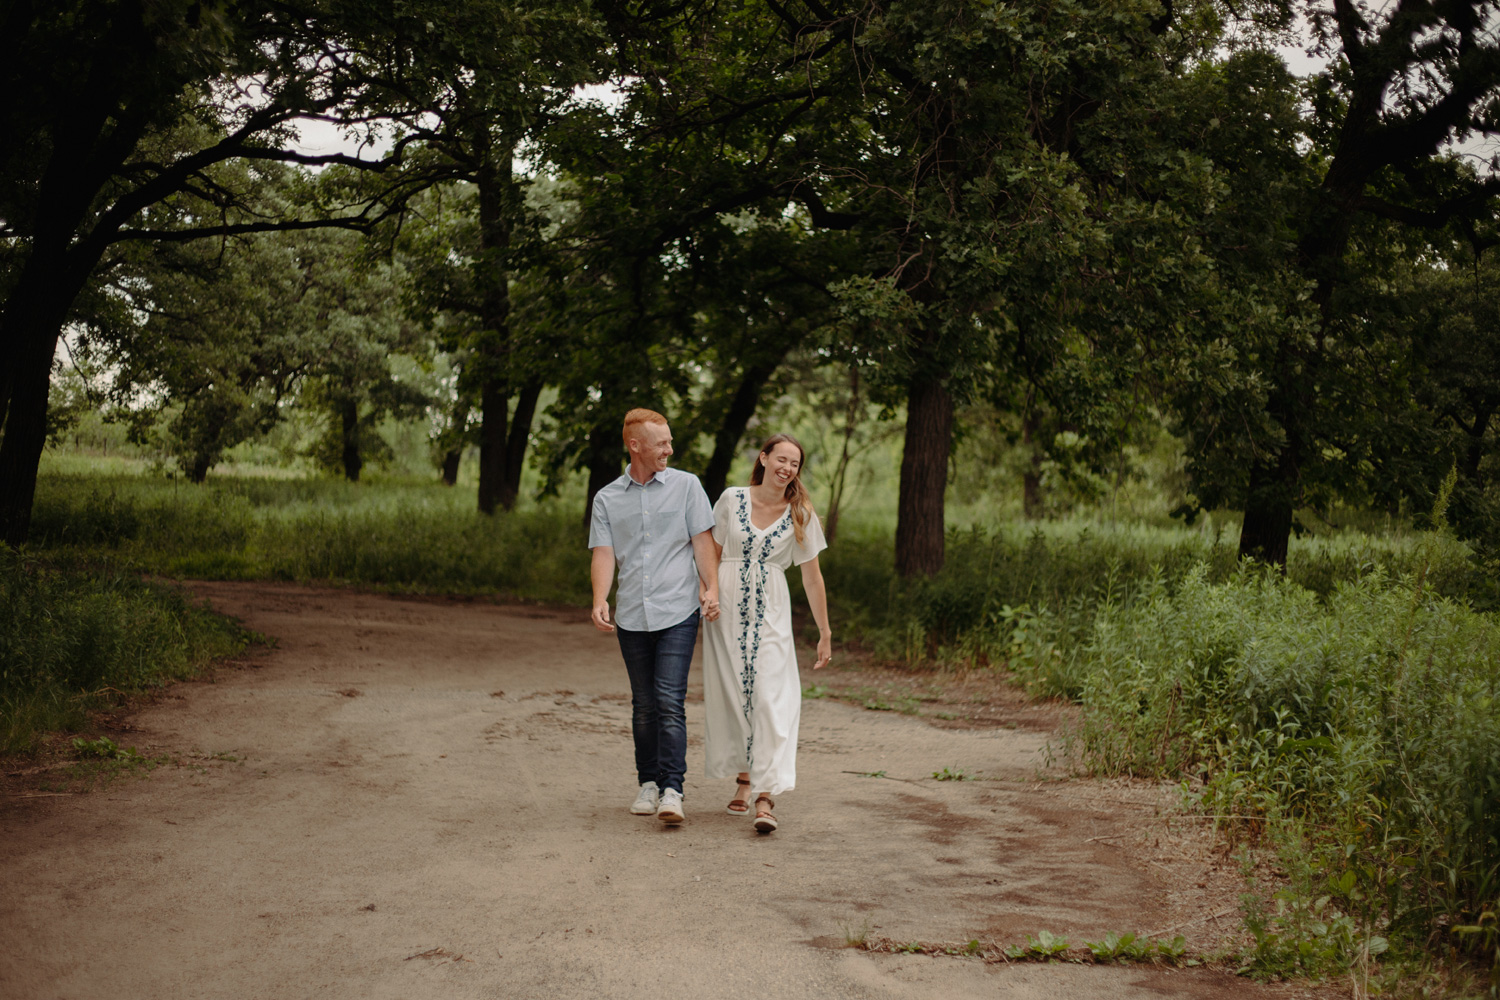 Engaged couple walking on dirt path